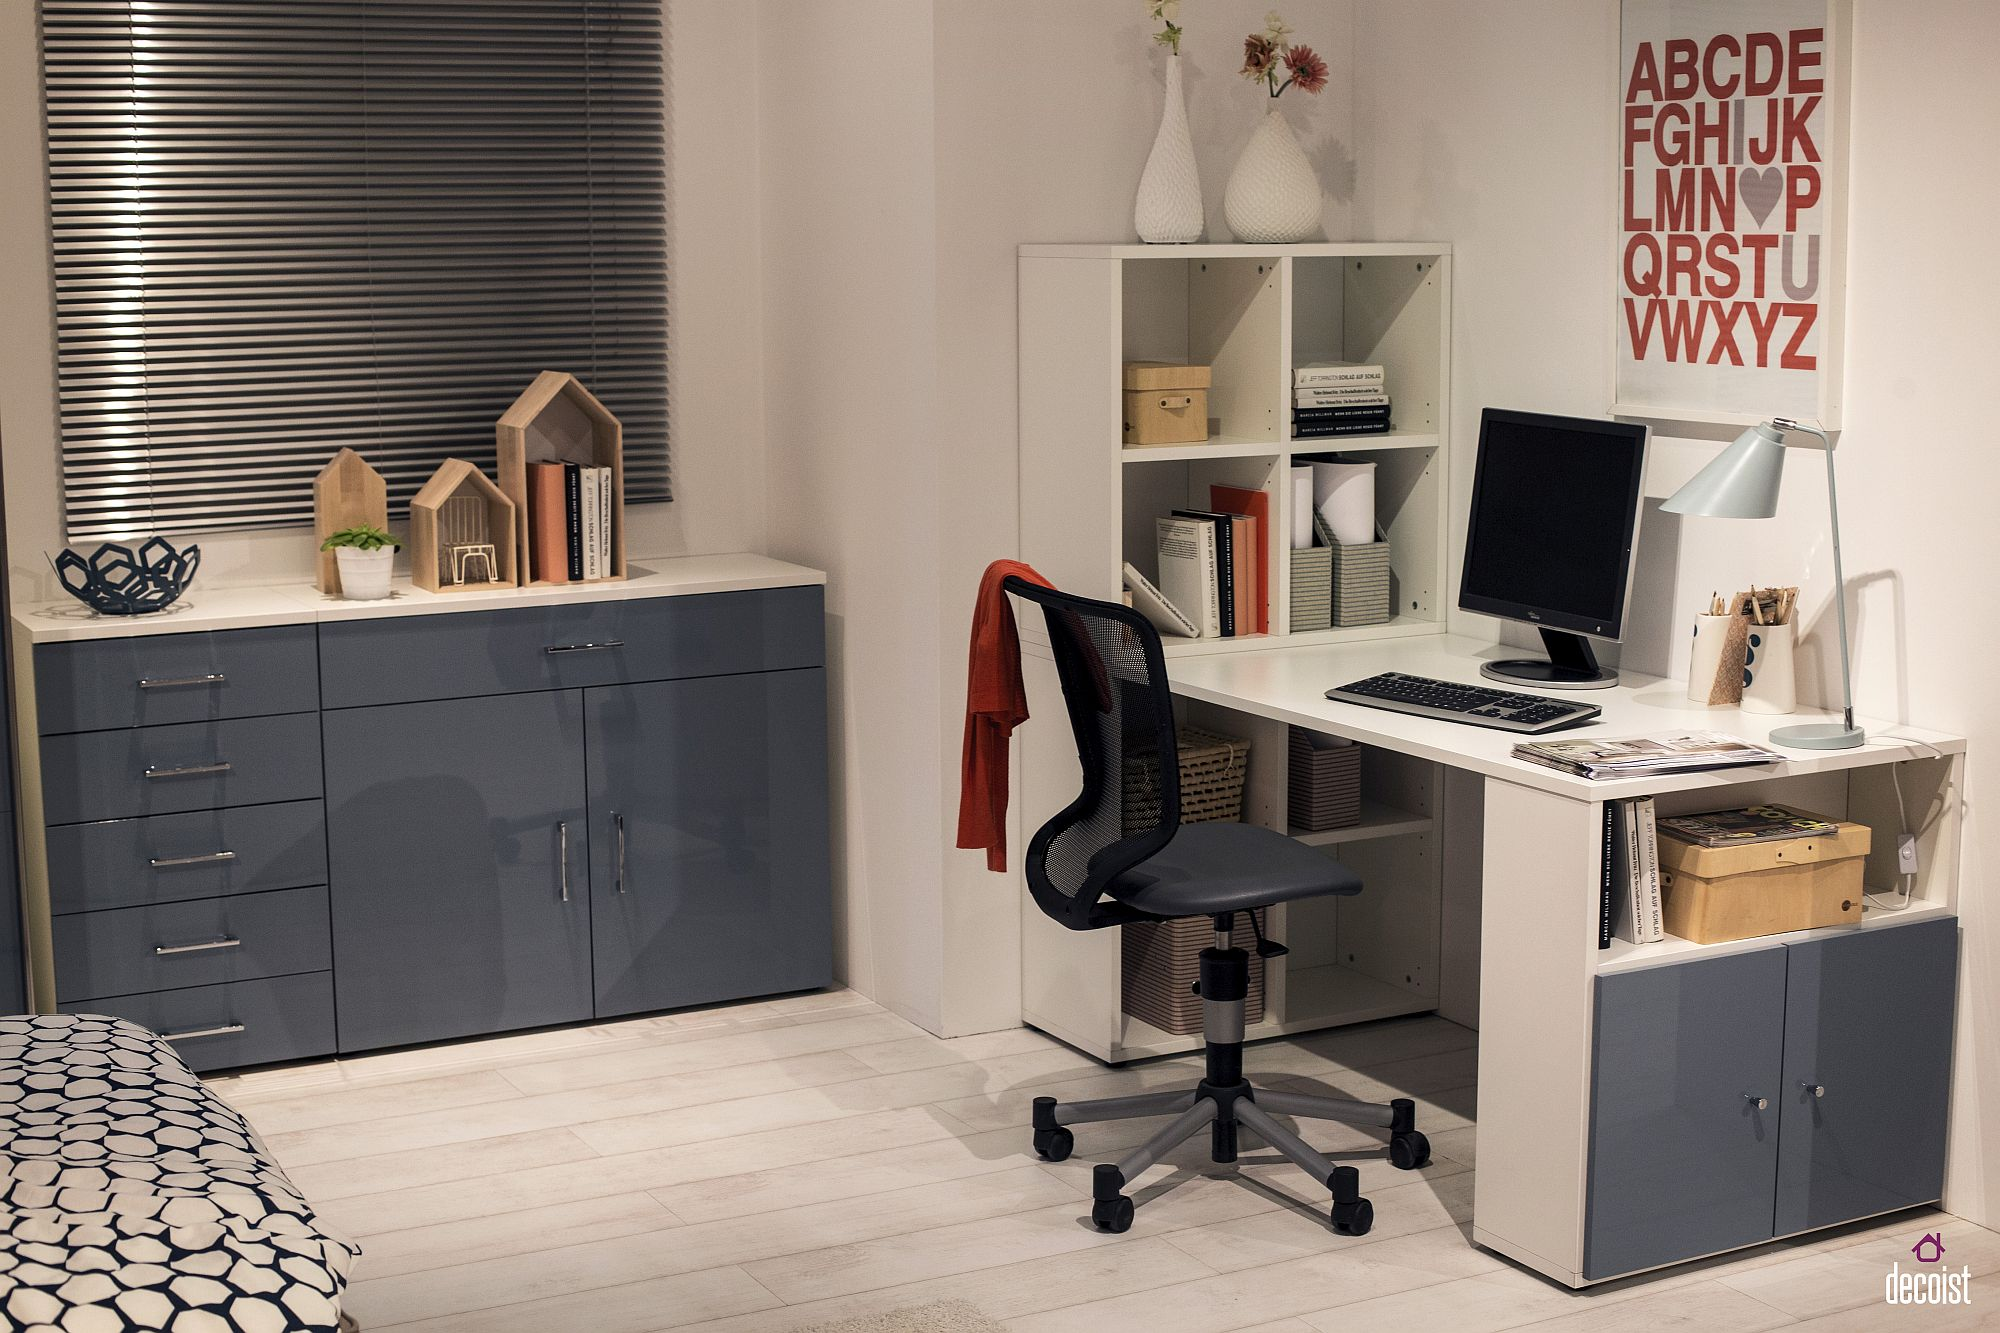 Ergonomic workdesk and matching shelves for the teen room